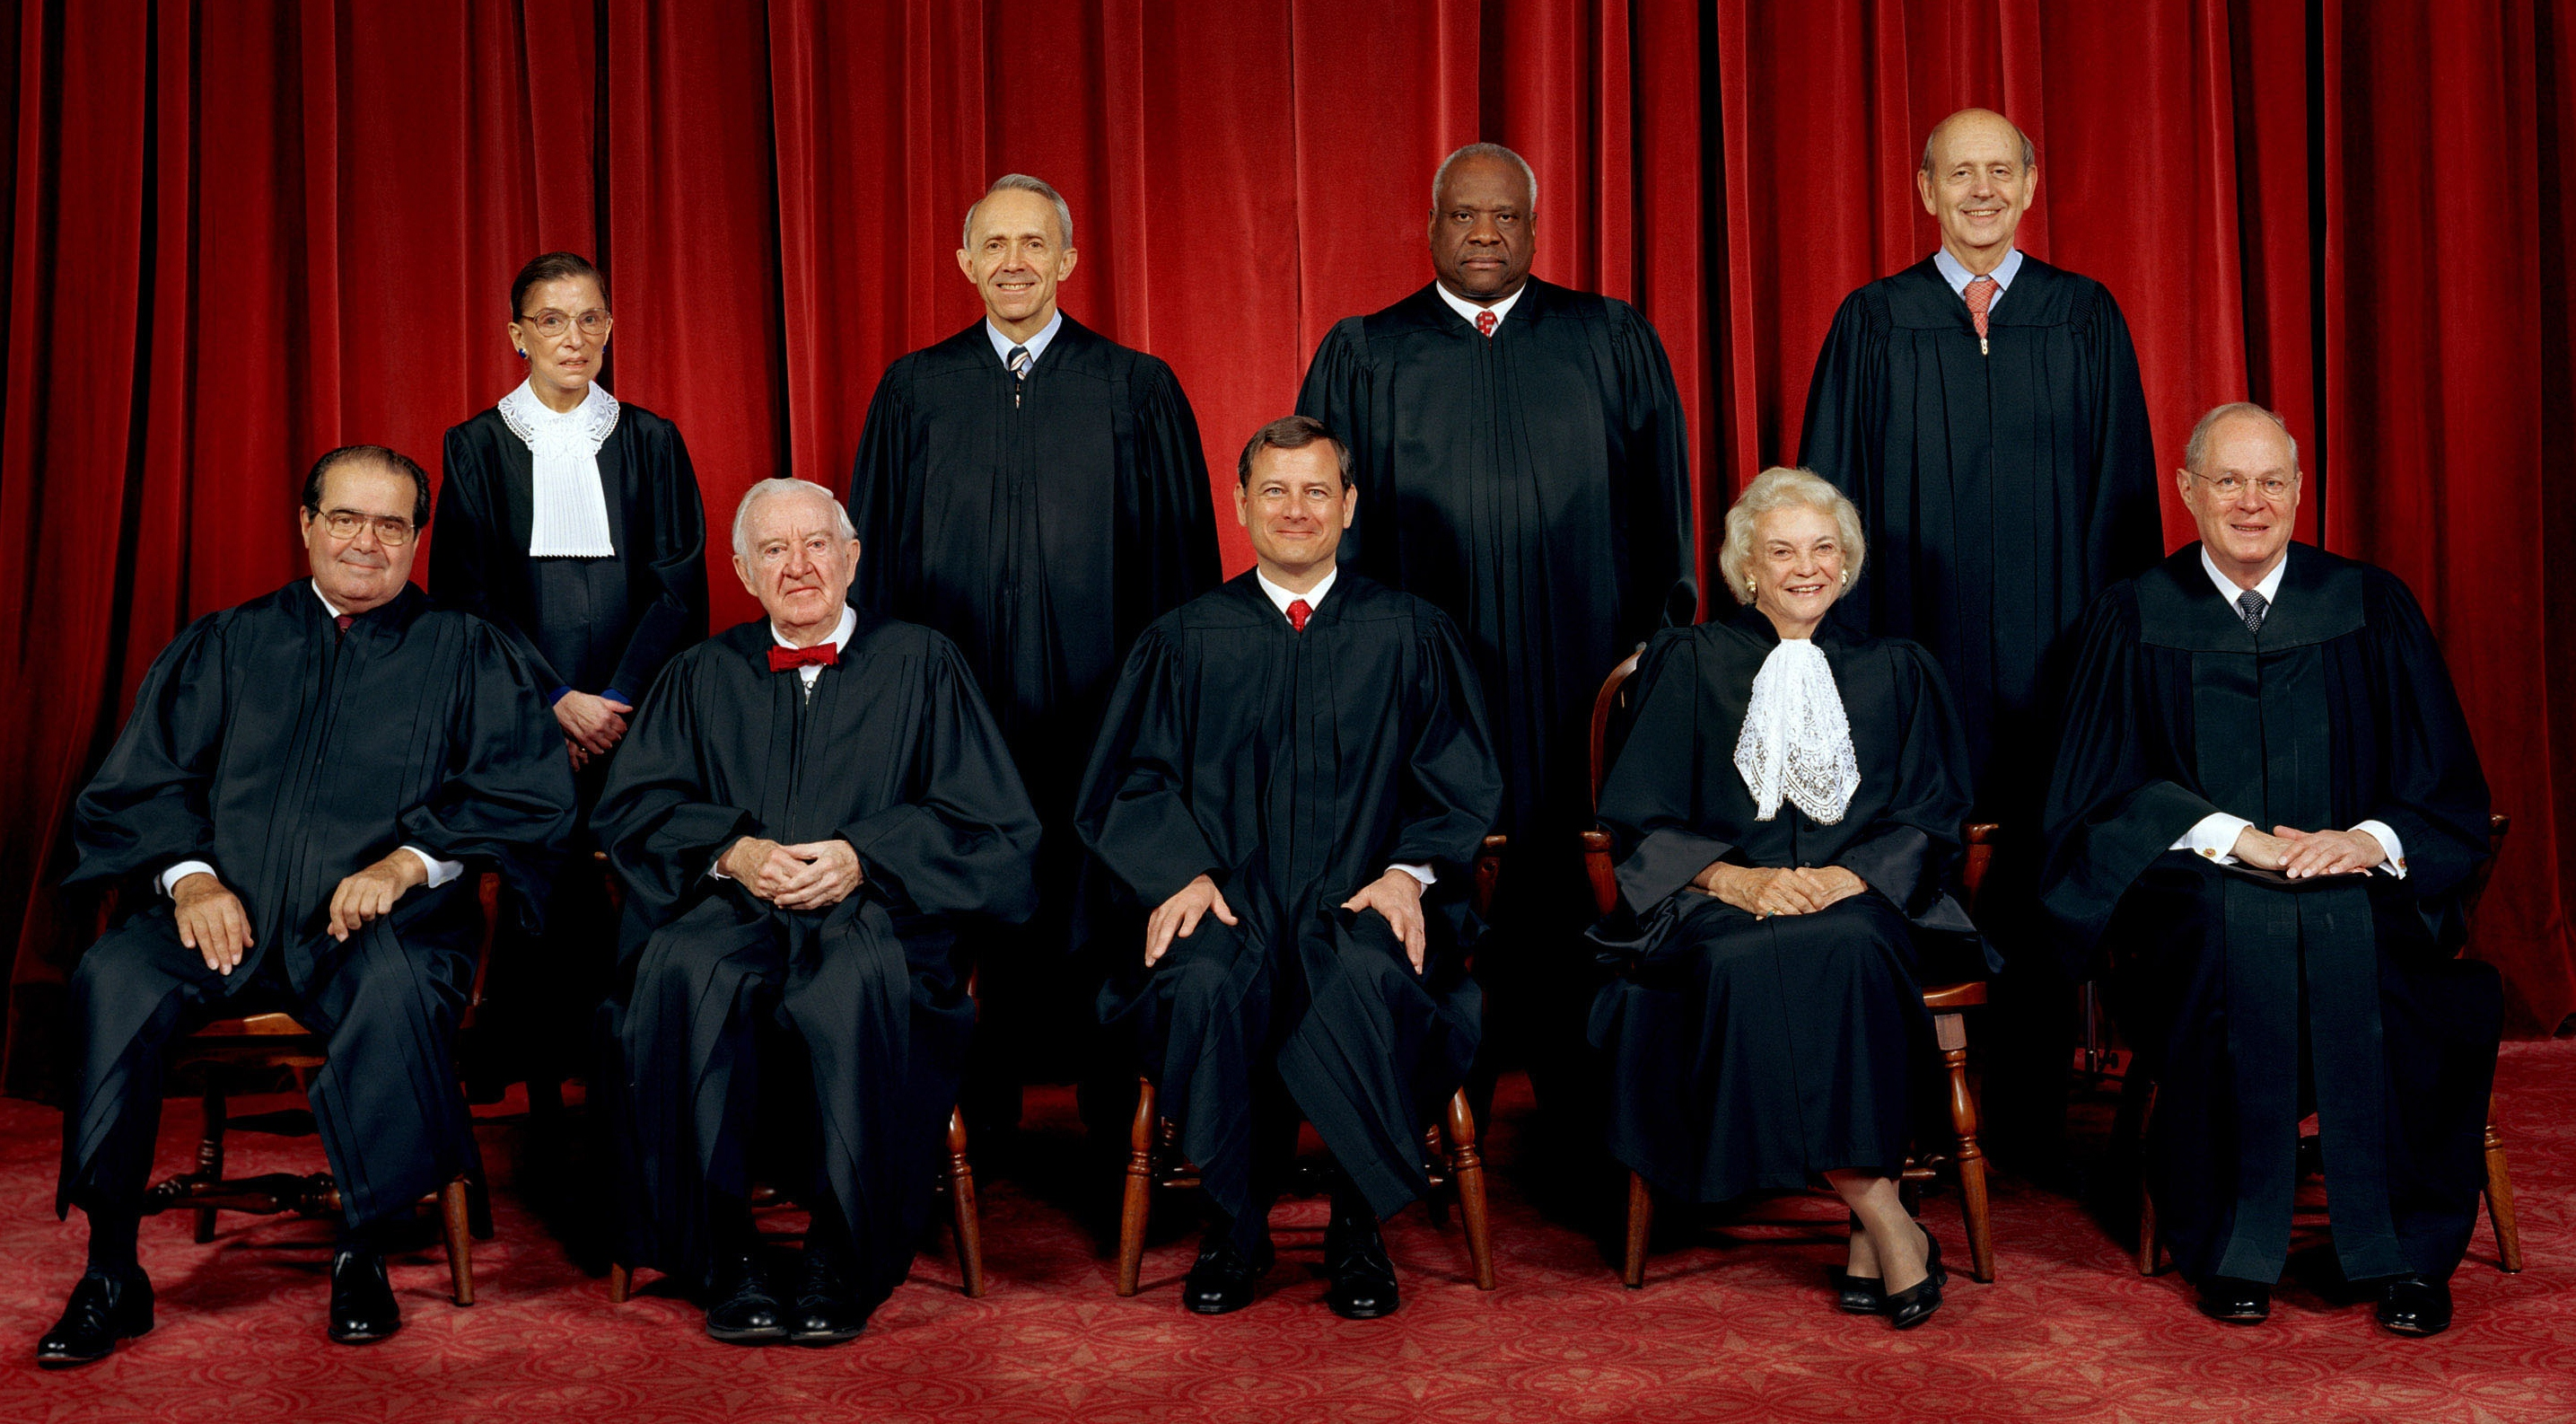 File:USSCB justices full2005.jpg - Wikimedia Commons